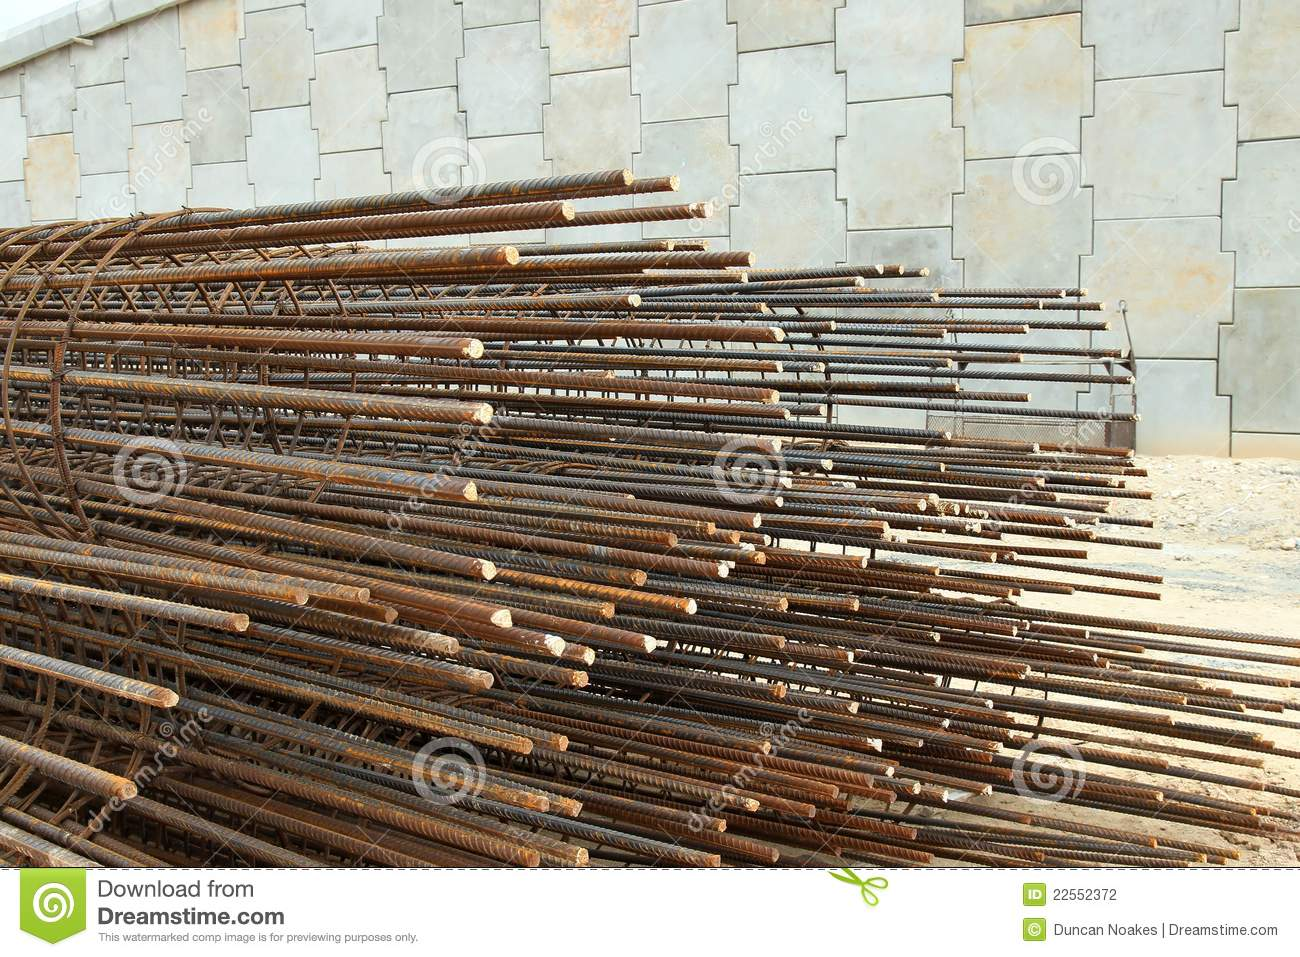 Steel Reinforcement Bars : Reinforcing steel bar and rods stock photo image